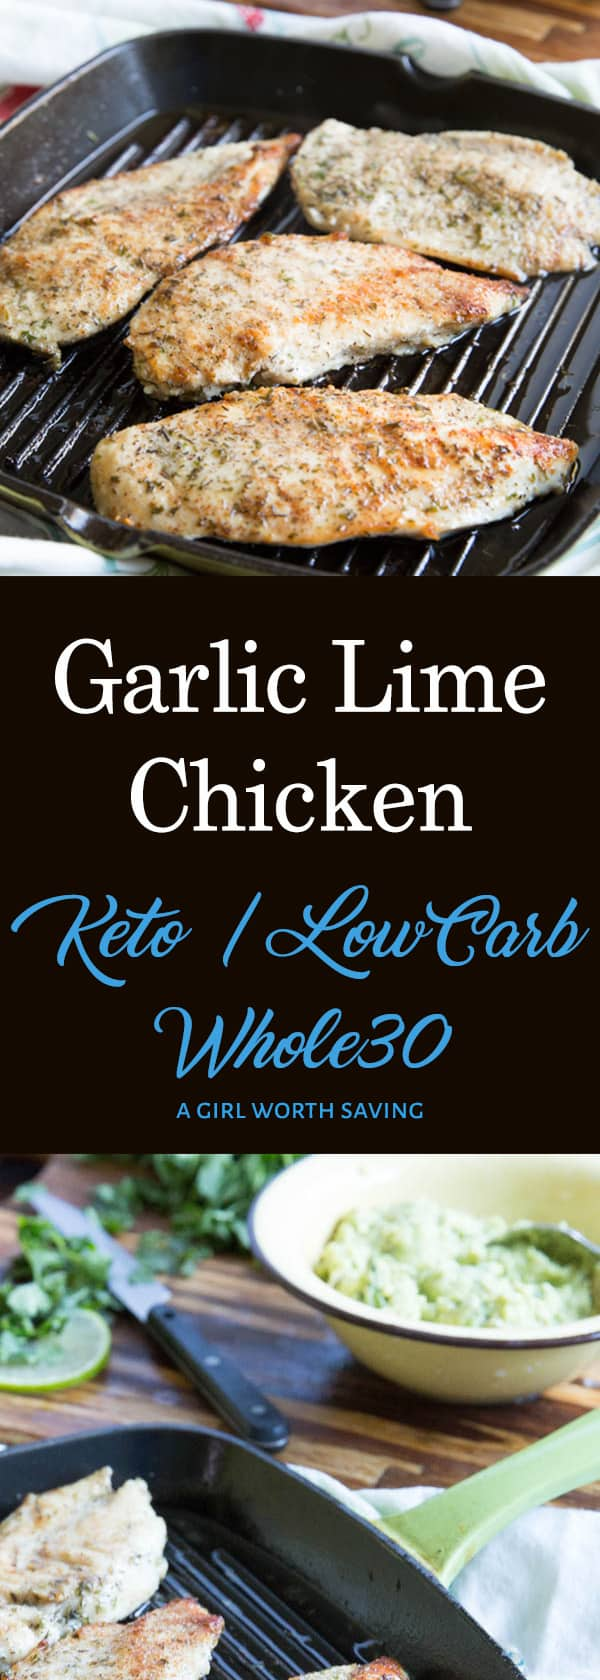 Try out this garlic lime chicken! This low carb Whole 30 friendly chicken is a winner. It is a recipe that you will want to make again and again.